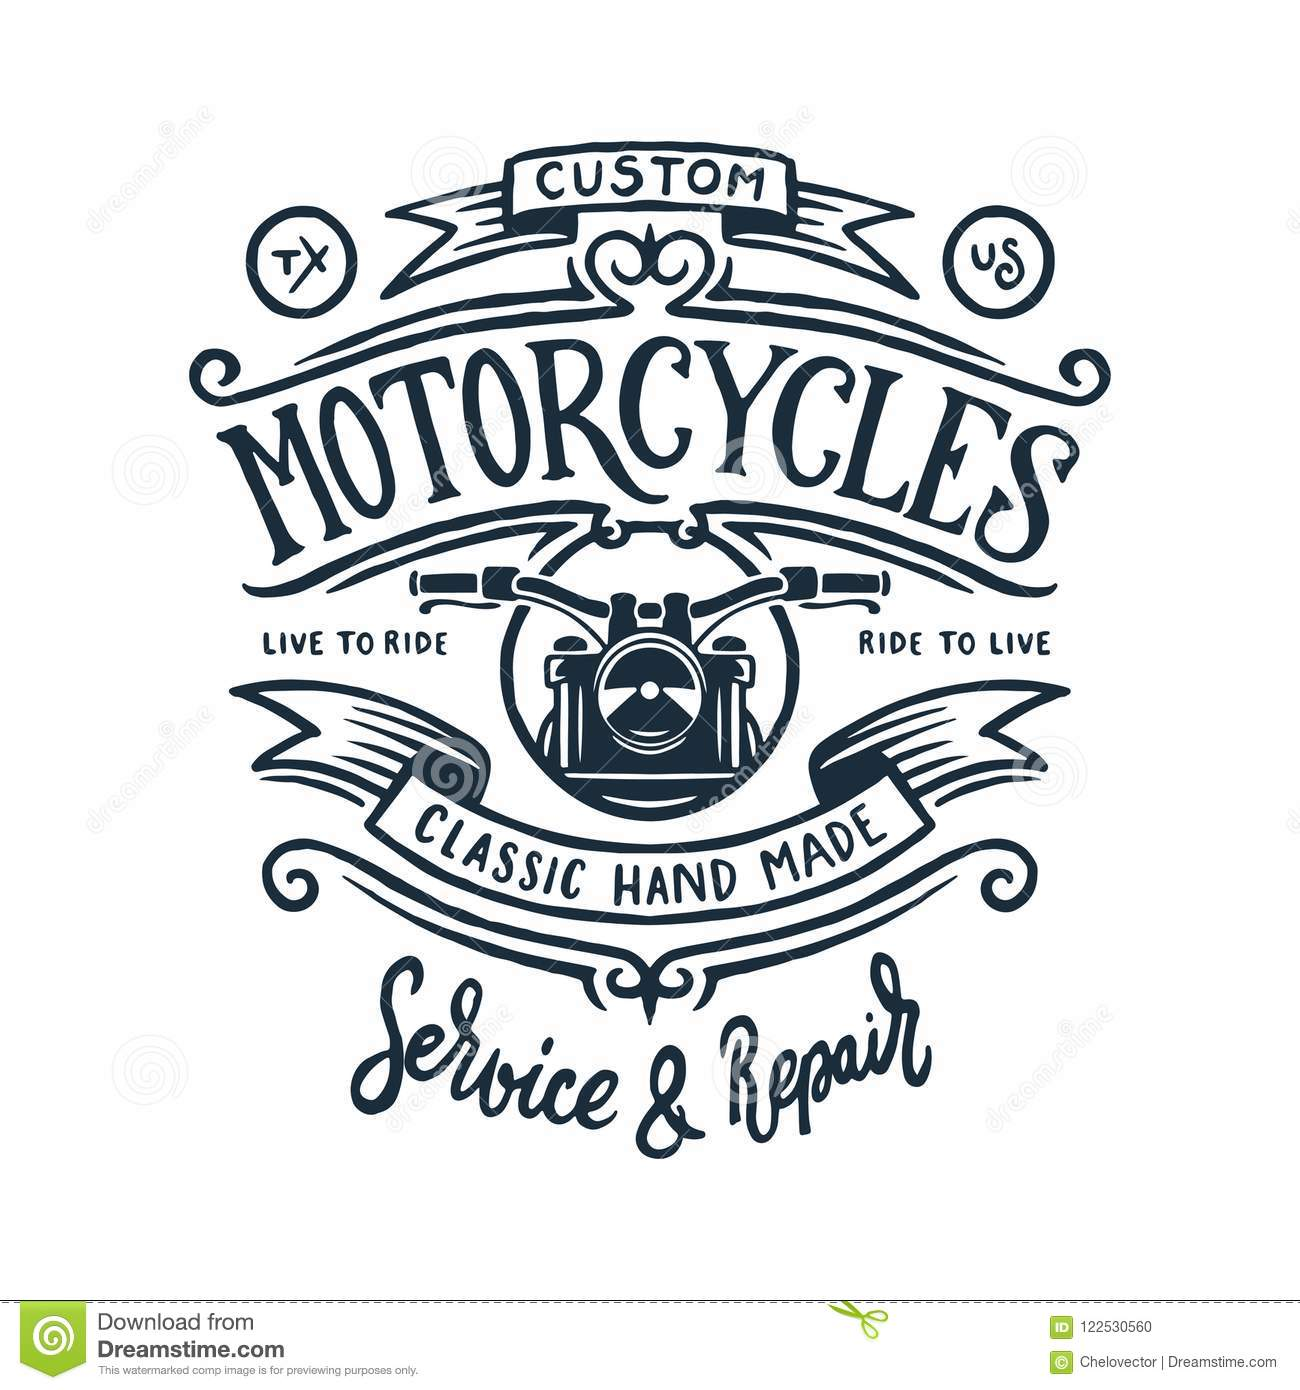 f6debd82 Vintage motorcycle t-shirt hand drawn graphics. Live to ride quote. Custom  motorcycles garage service and repair. Vector illustration.